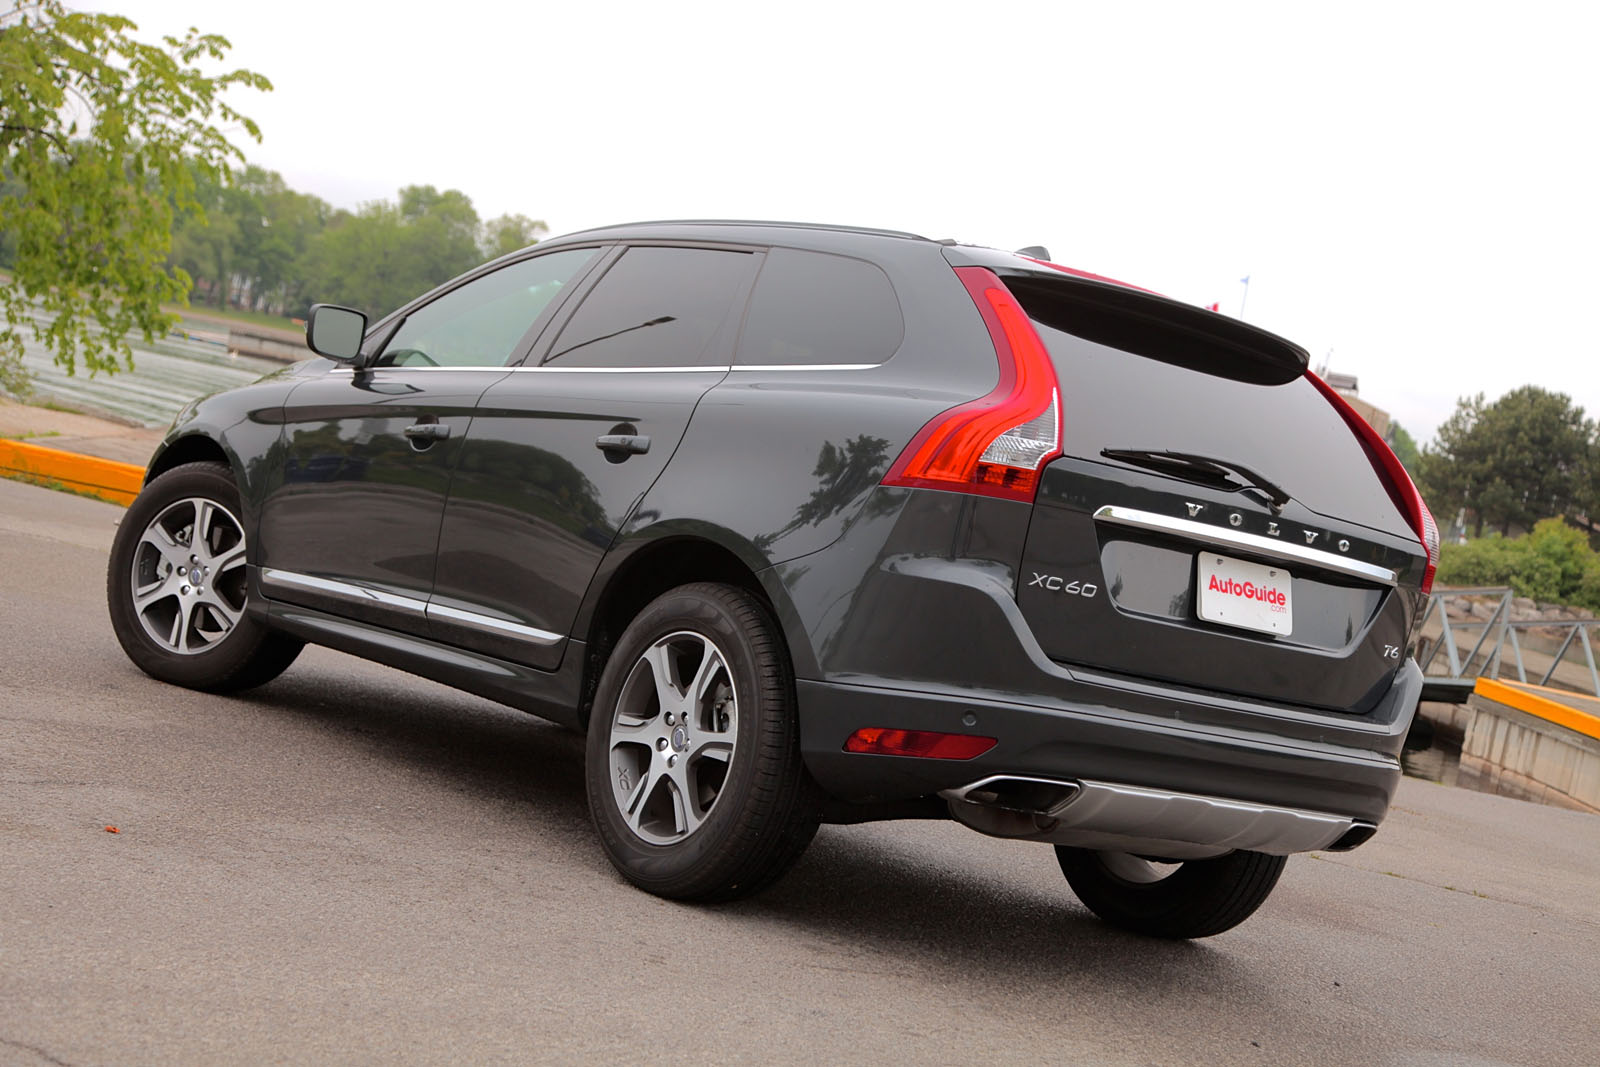 2015 Volvo XC60 vs Volvo V60 Cross Country - AutoGuide.com